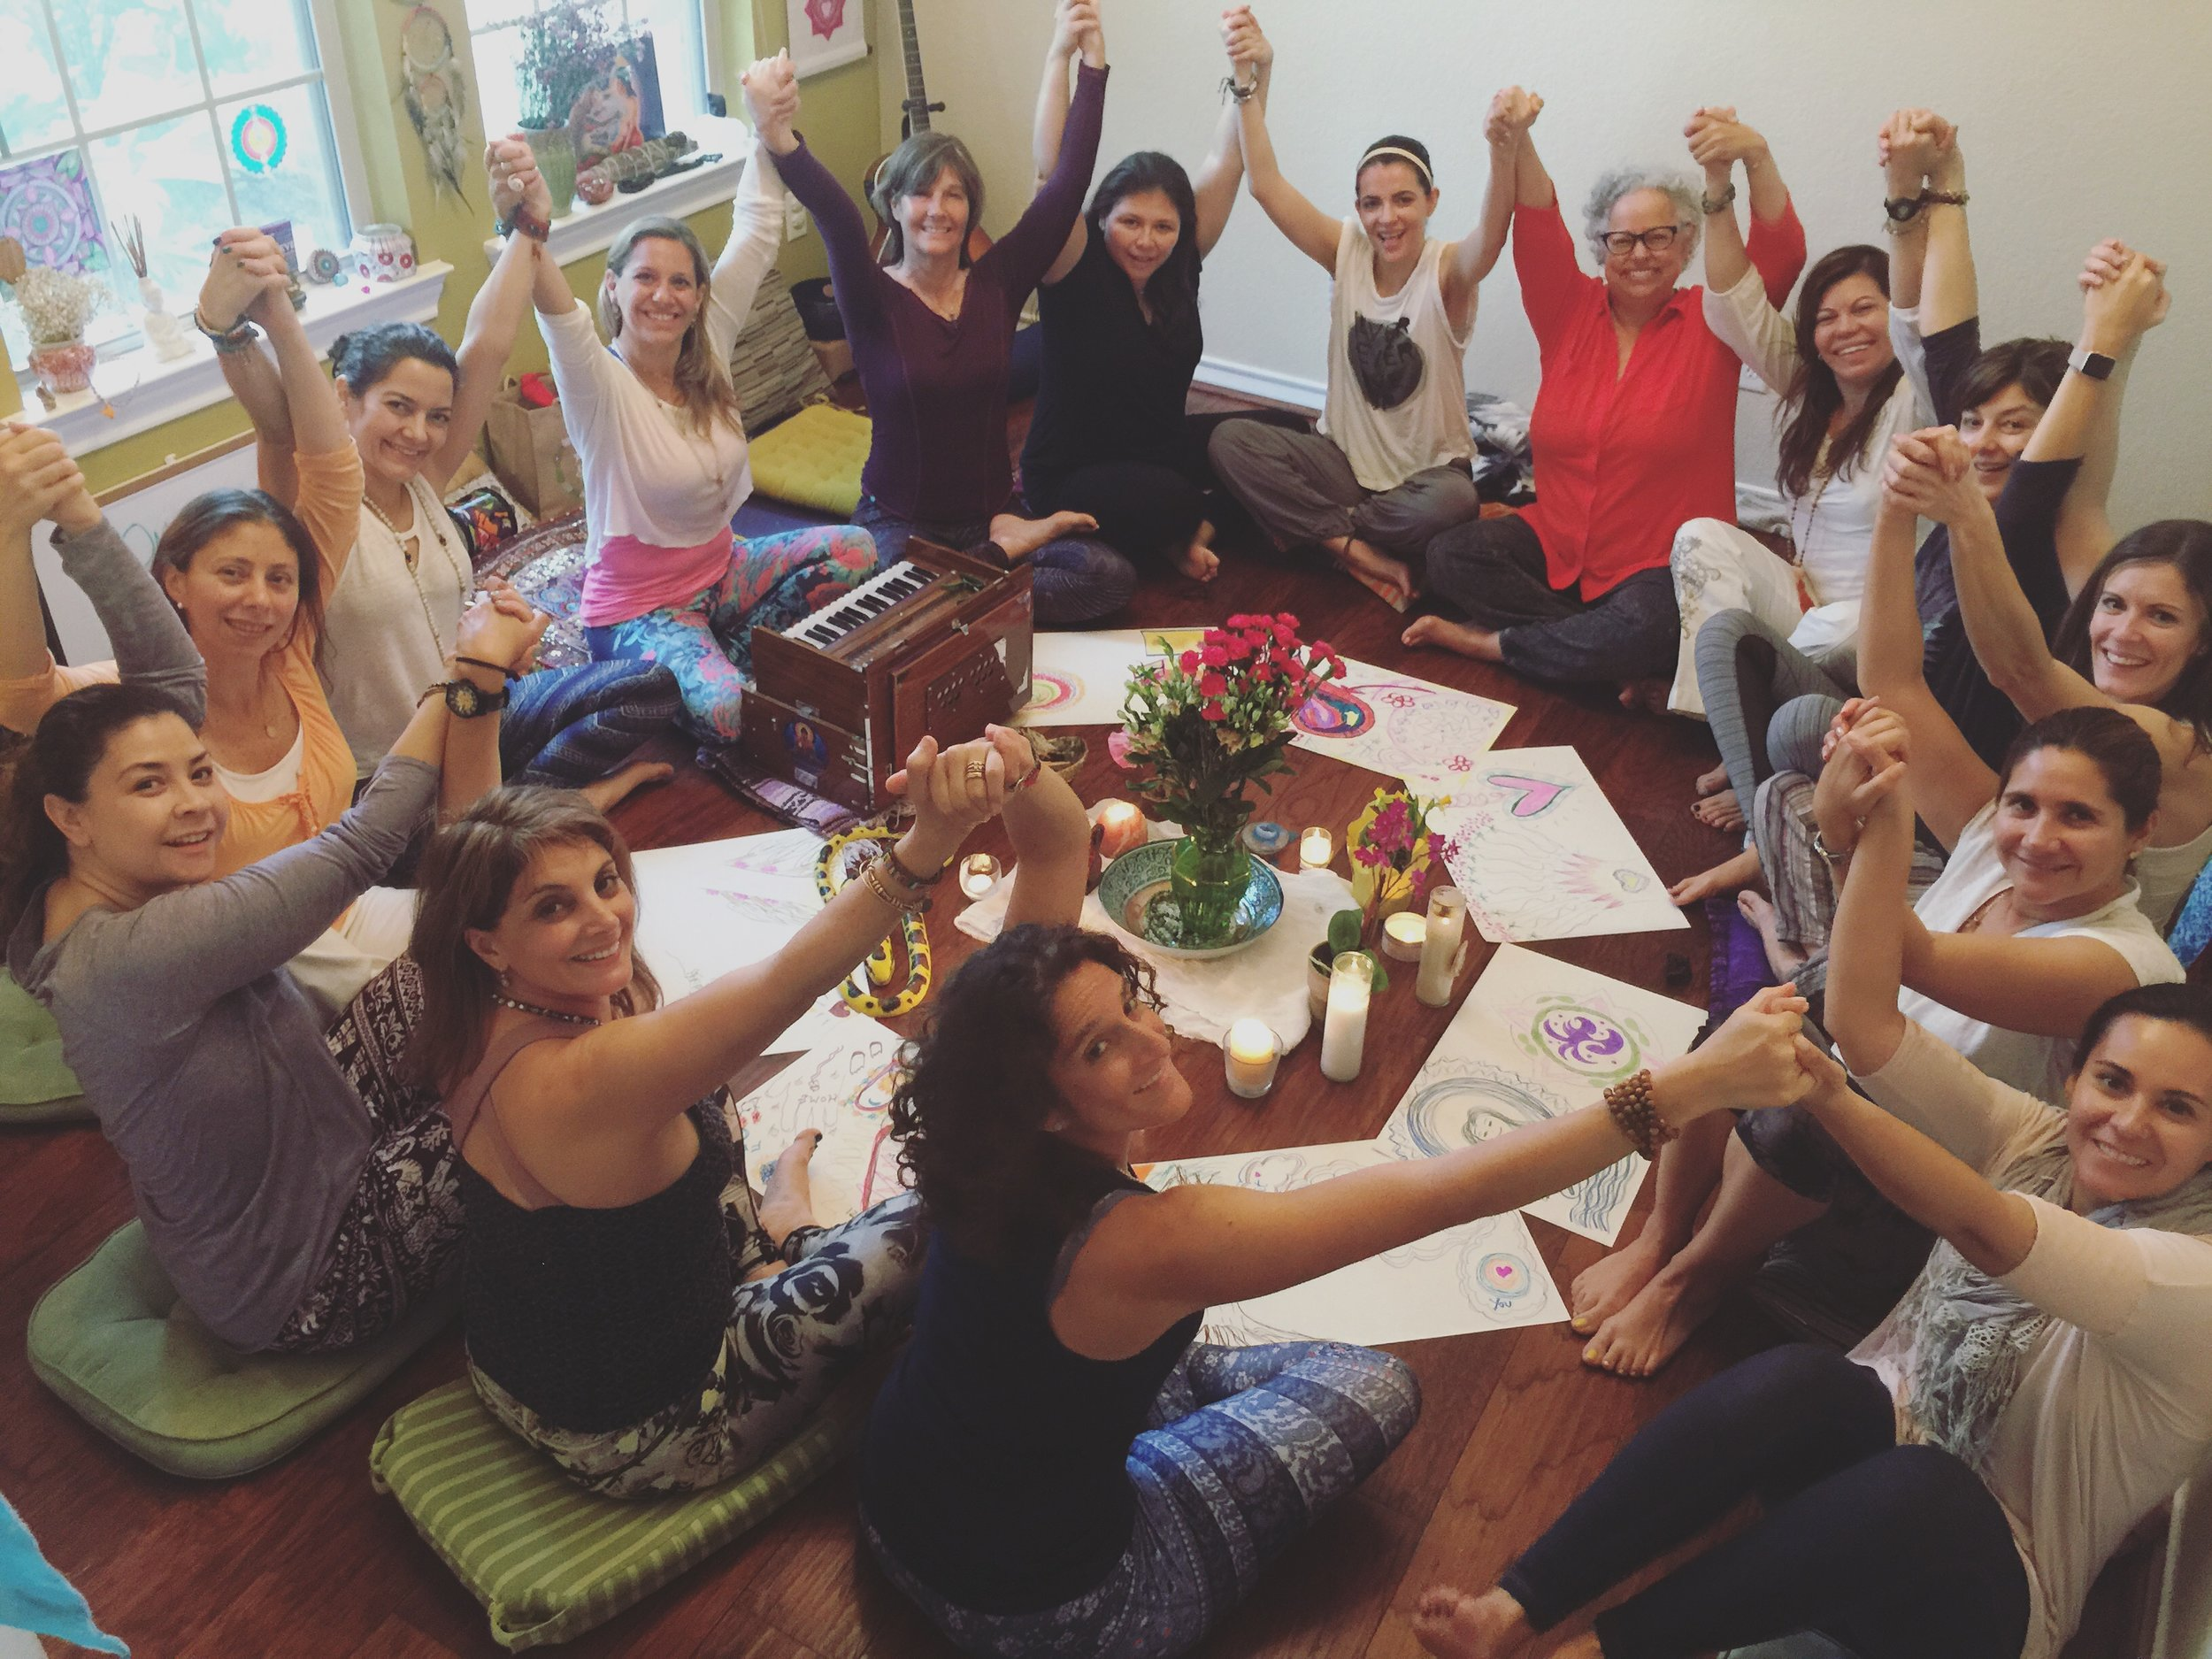 JOIN OUR COMMUNITY - Connect with over 50,000 women around the globe in conversation about spirituality, healing, guidance and sisterhood.